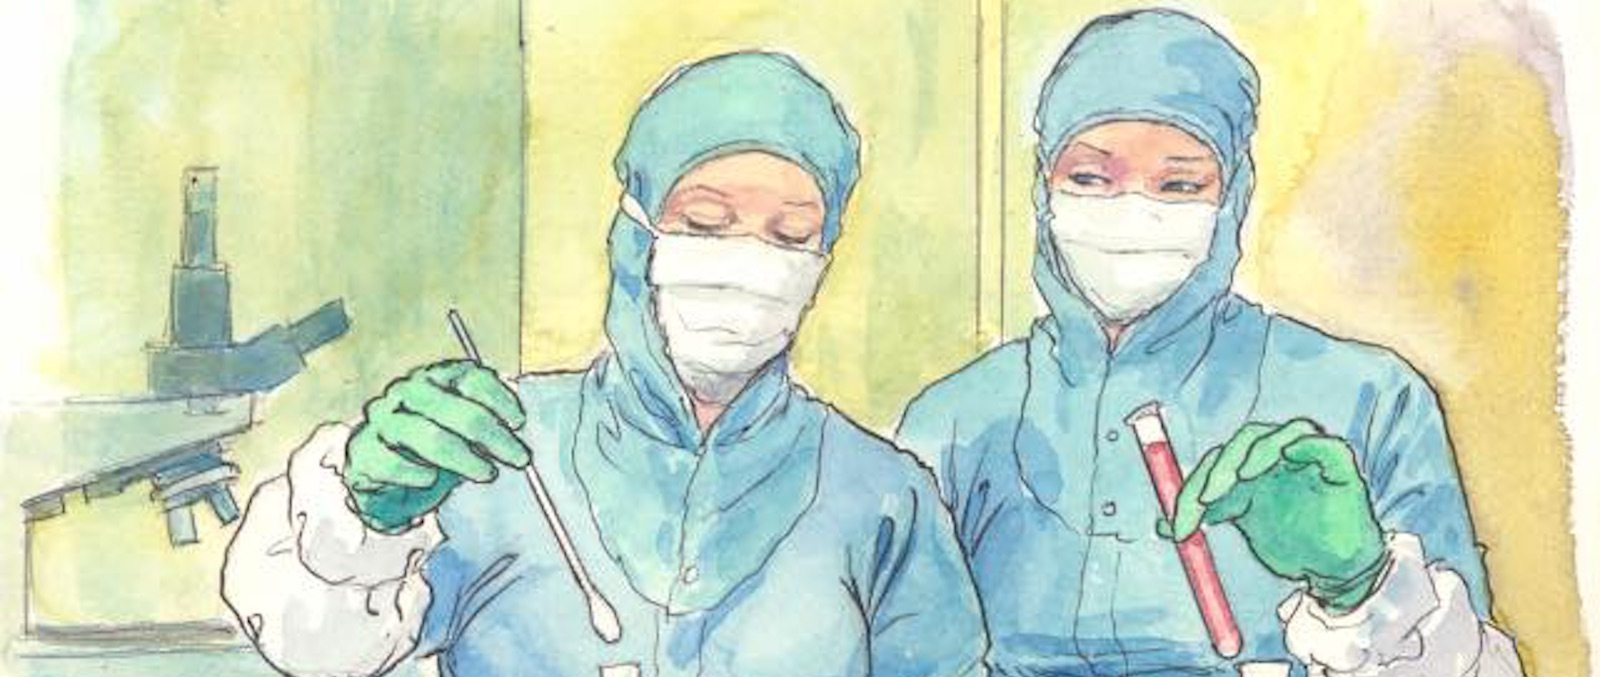 Consequences of the COVID-19 pandemic on cancer patients